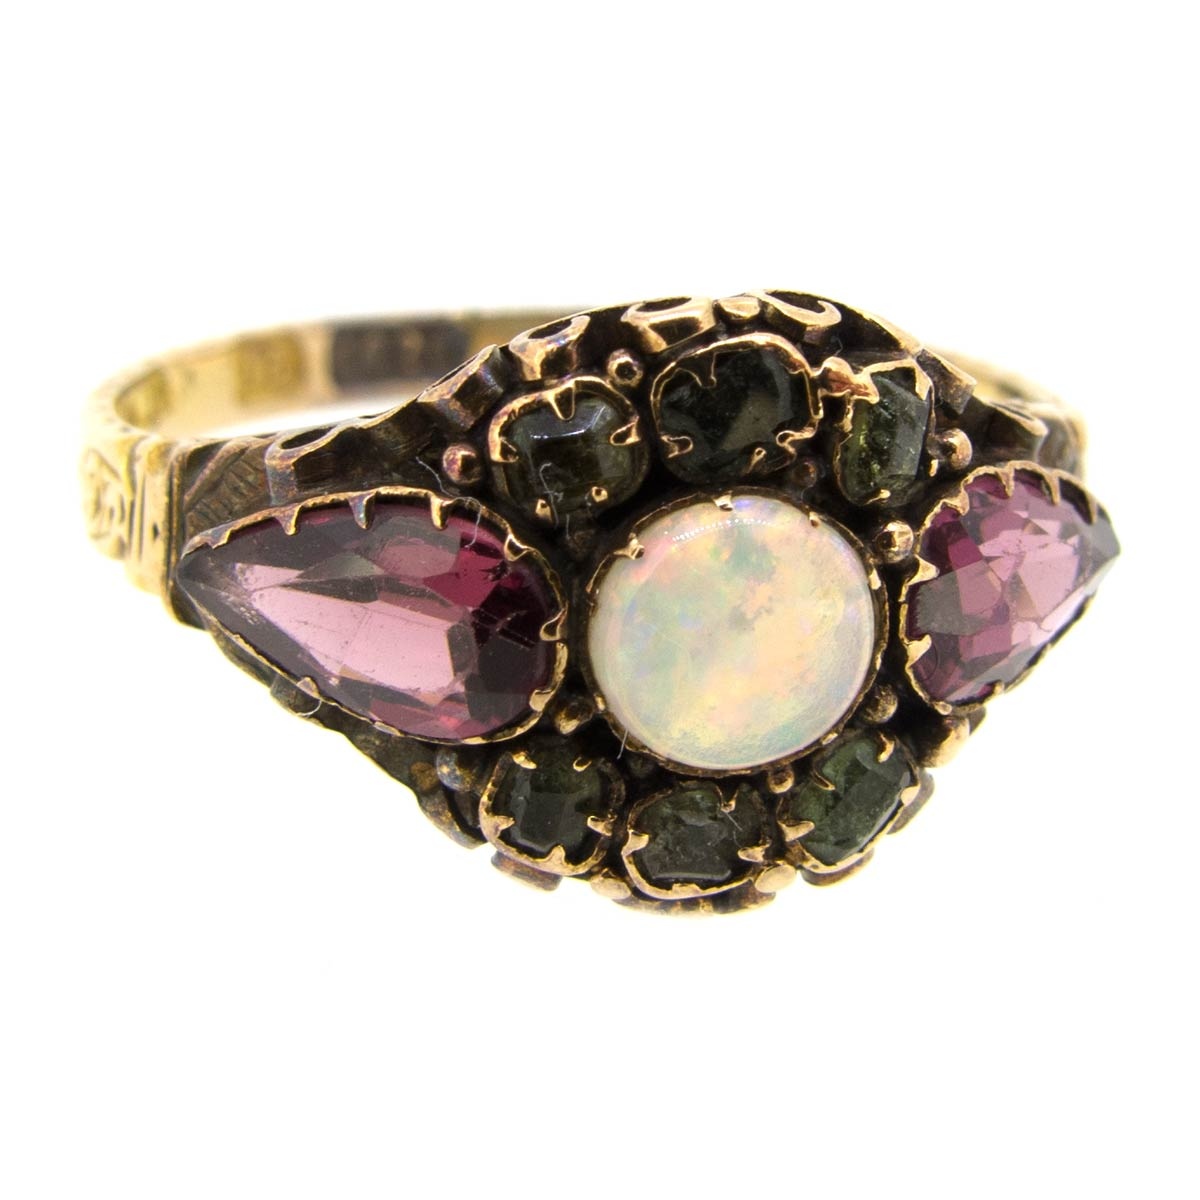 Antique Opal, Amethyst & Emerald Ring